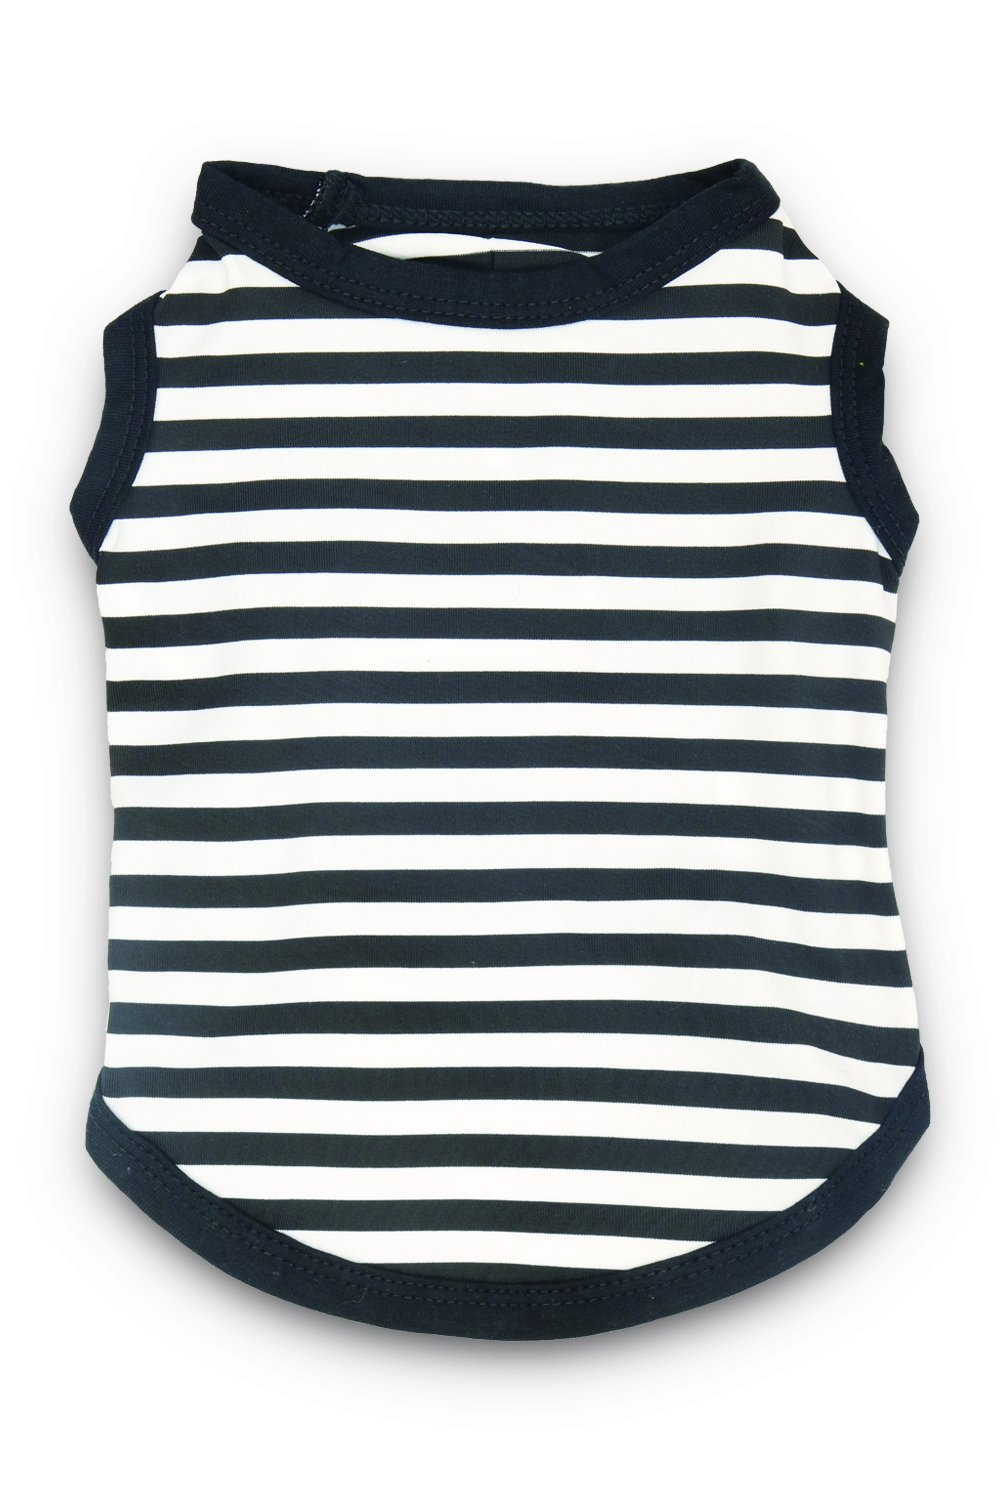 DroolingDog Summer Dog Shirts Pet Striped Dog Clothes for Small Dogs